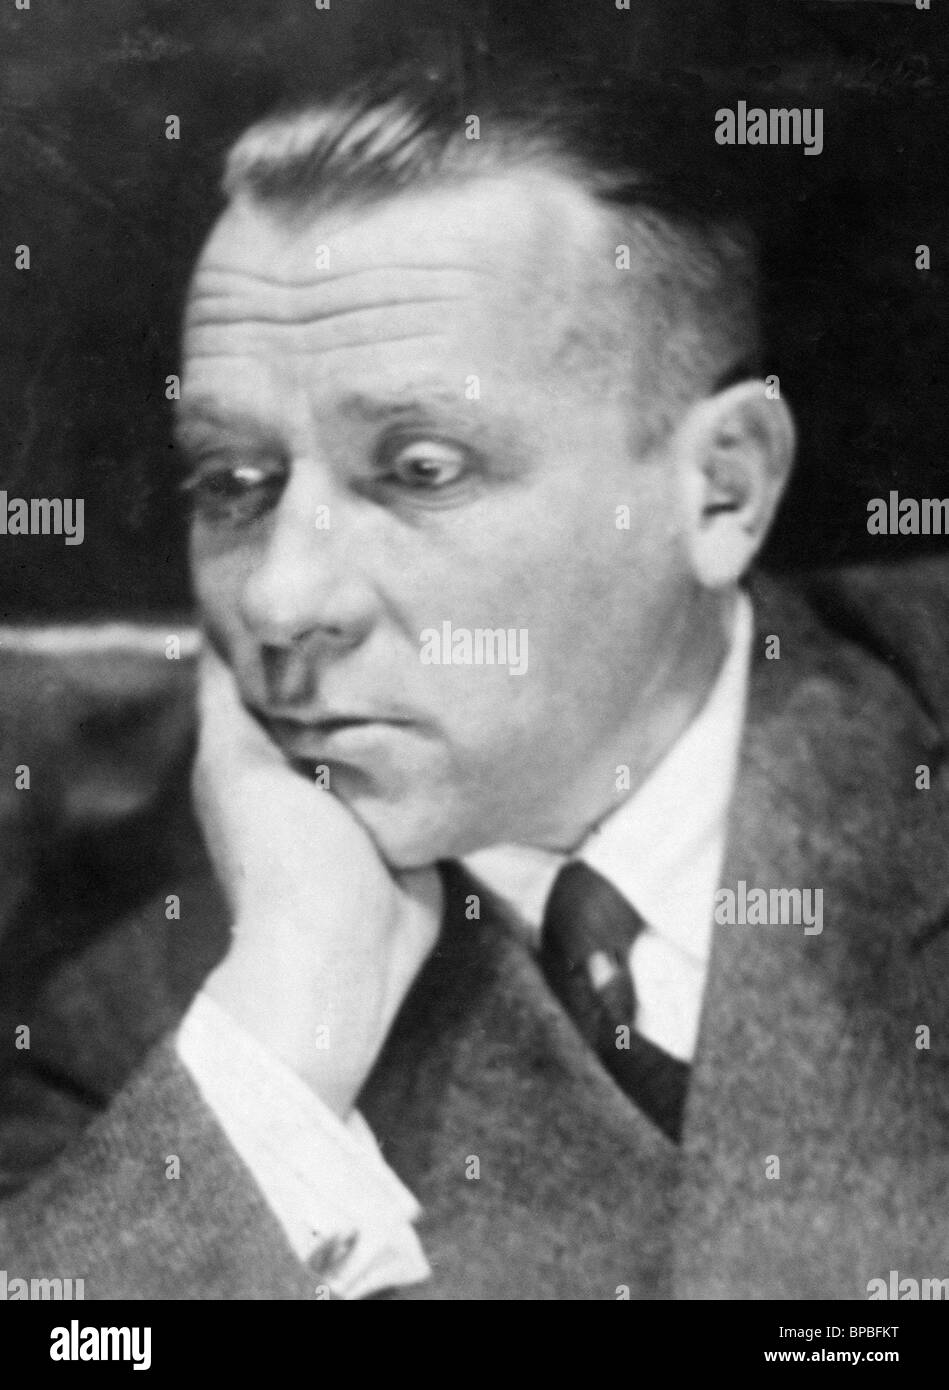 Russian writer Mikhail Bulgakov (1890-1941) - Stock Image